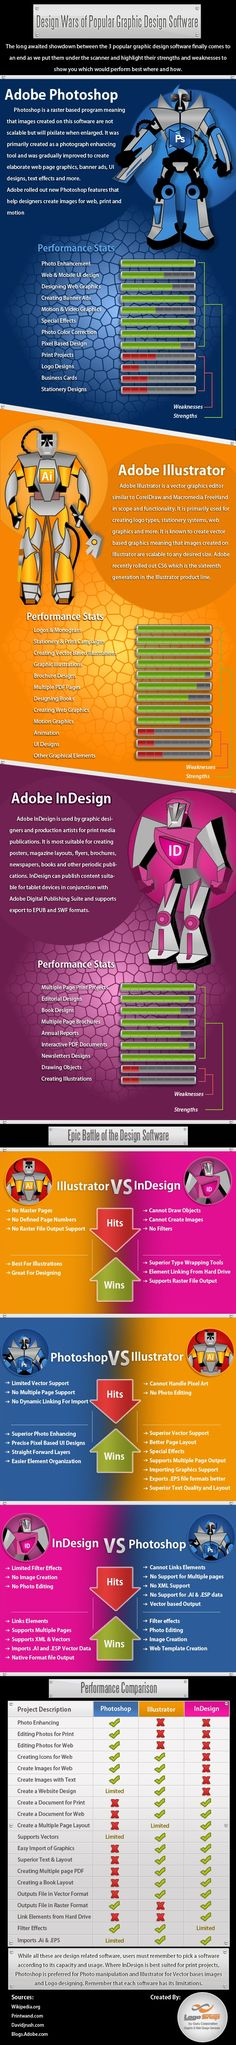 Here's an infographic that shows you the strengths and weaknesses of Adobe Photoshop, Illustrator and InDesign